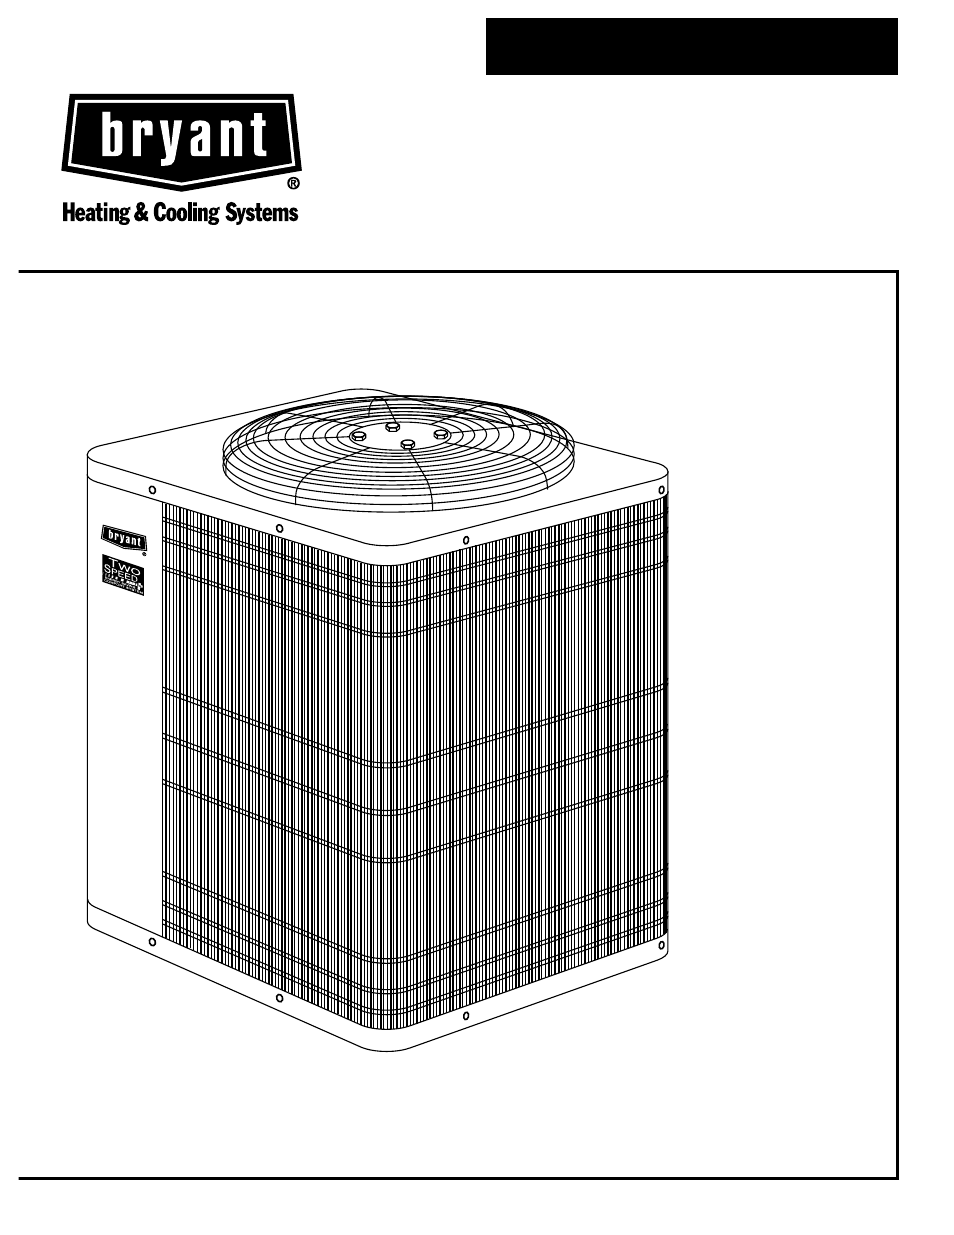 ... singer air conditioner user manual his lord victimizer. singer air  conditioner user manual thermo king v520 service manual peter to the east,  ...